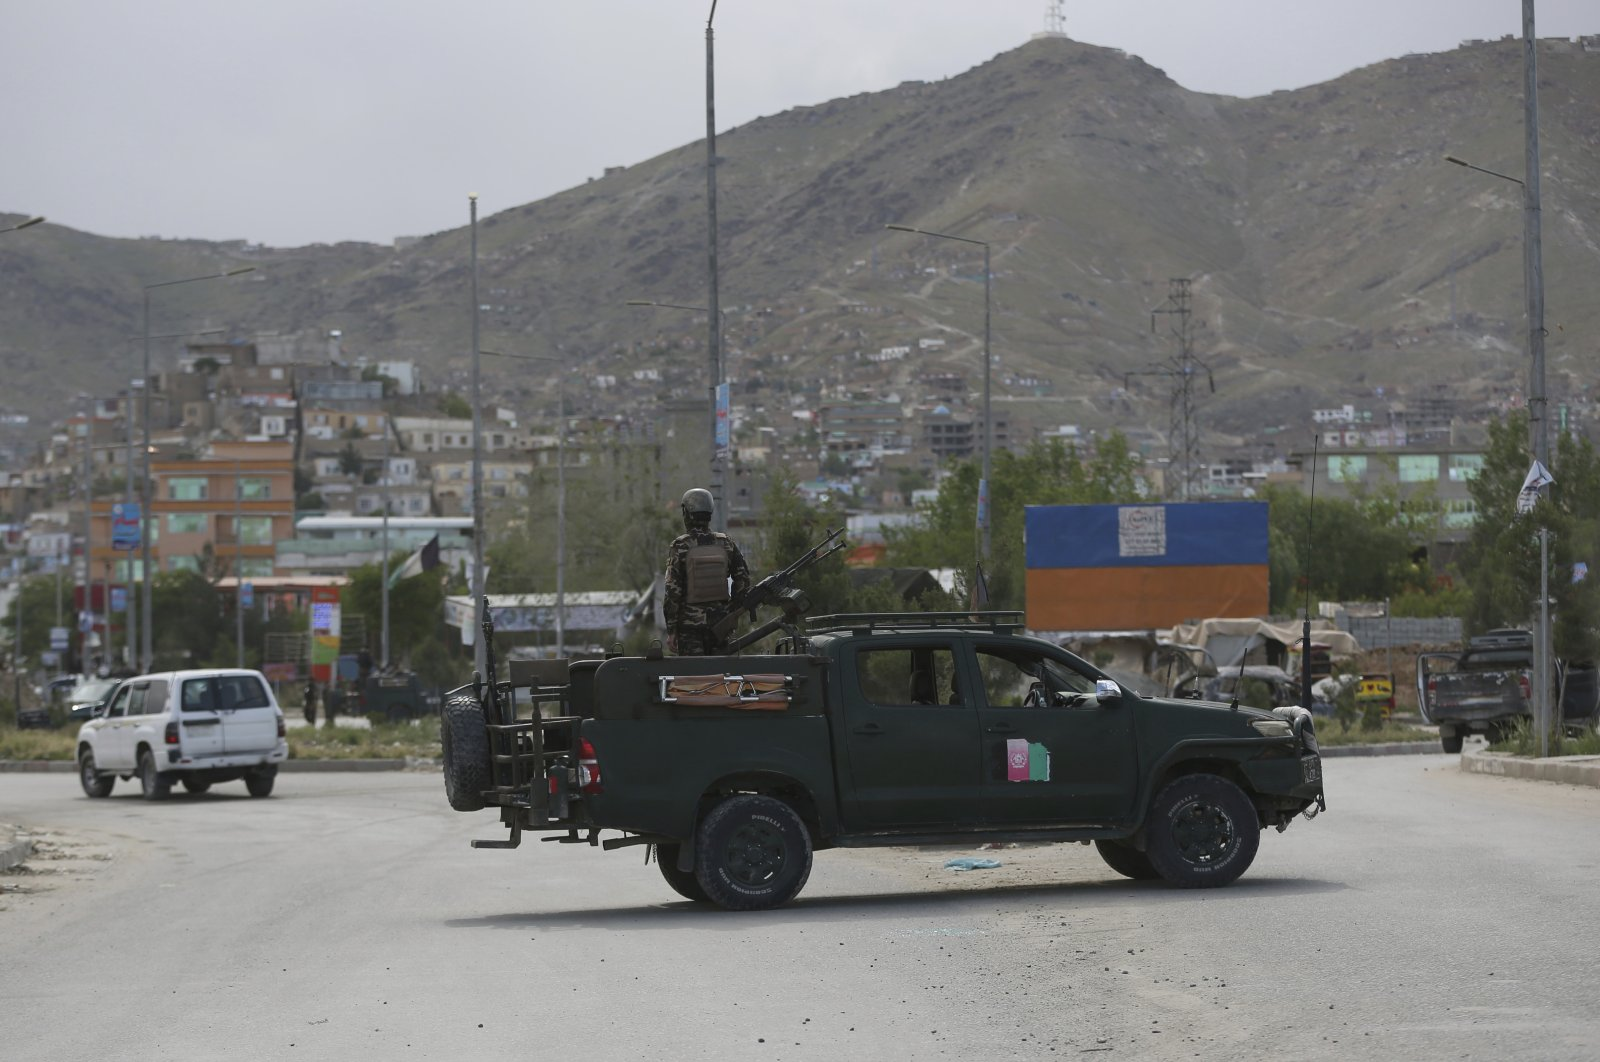 Afghan security forces inspect the site of a bomb explosion in Kabul, Afghanistan, May 18, 2020. (AP Photo)